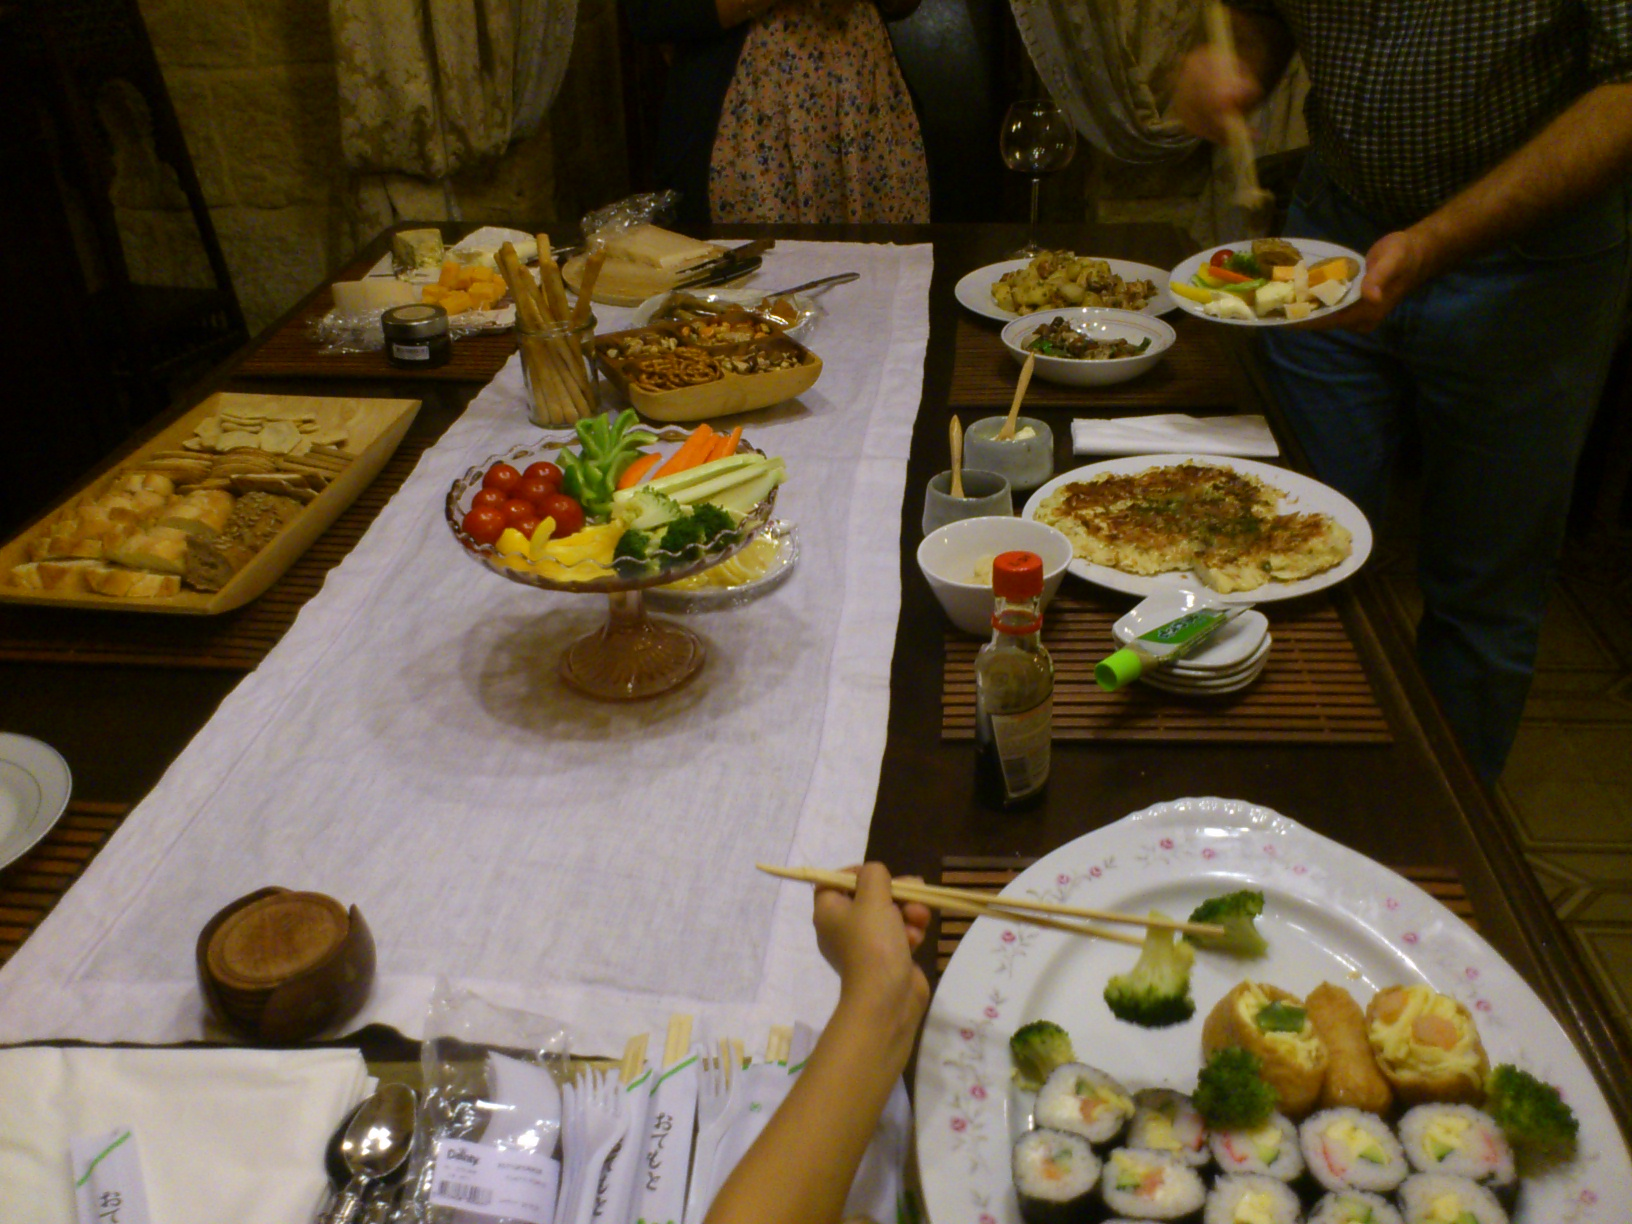 Wines, cheese, okonomiyaki and many more delicacies were on offer in the dining room...